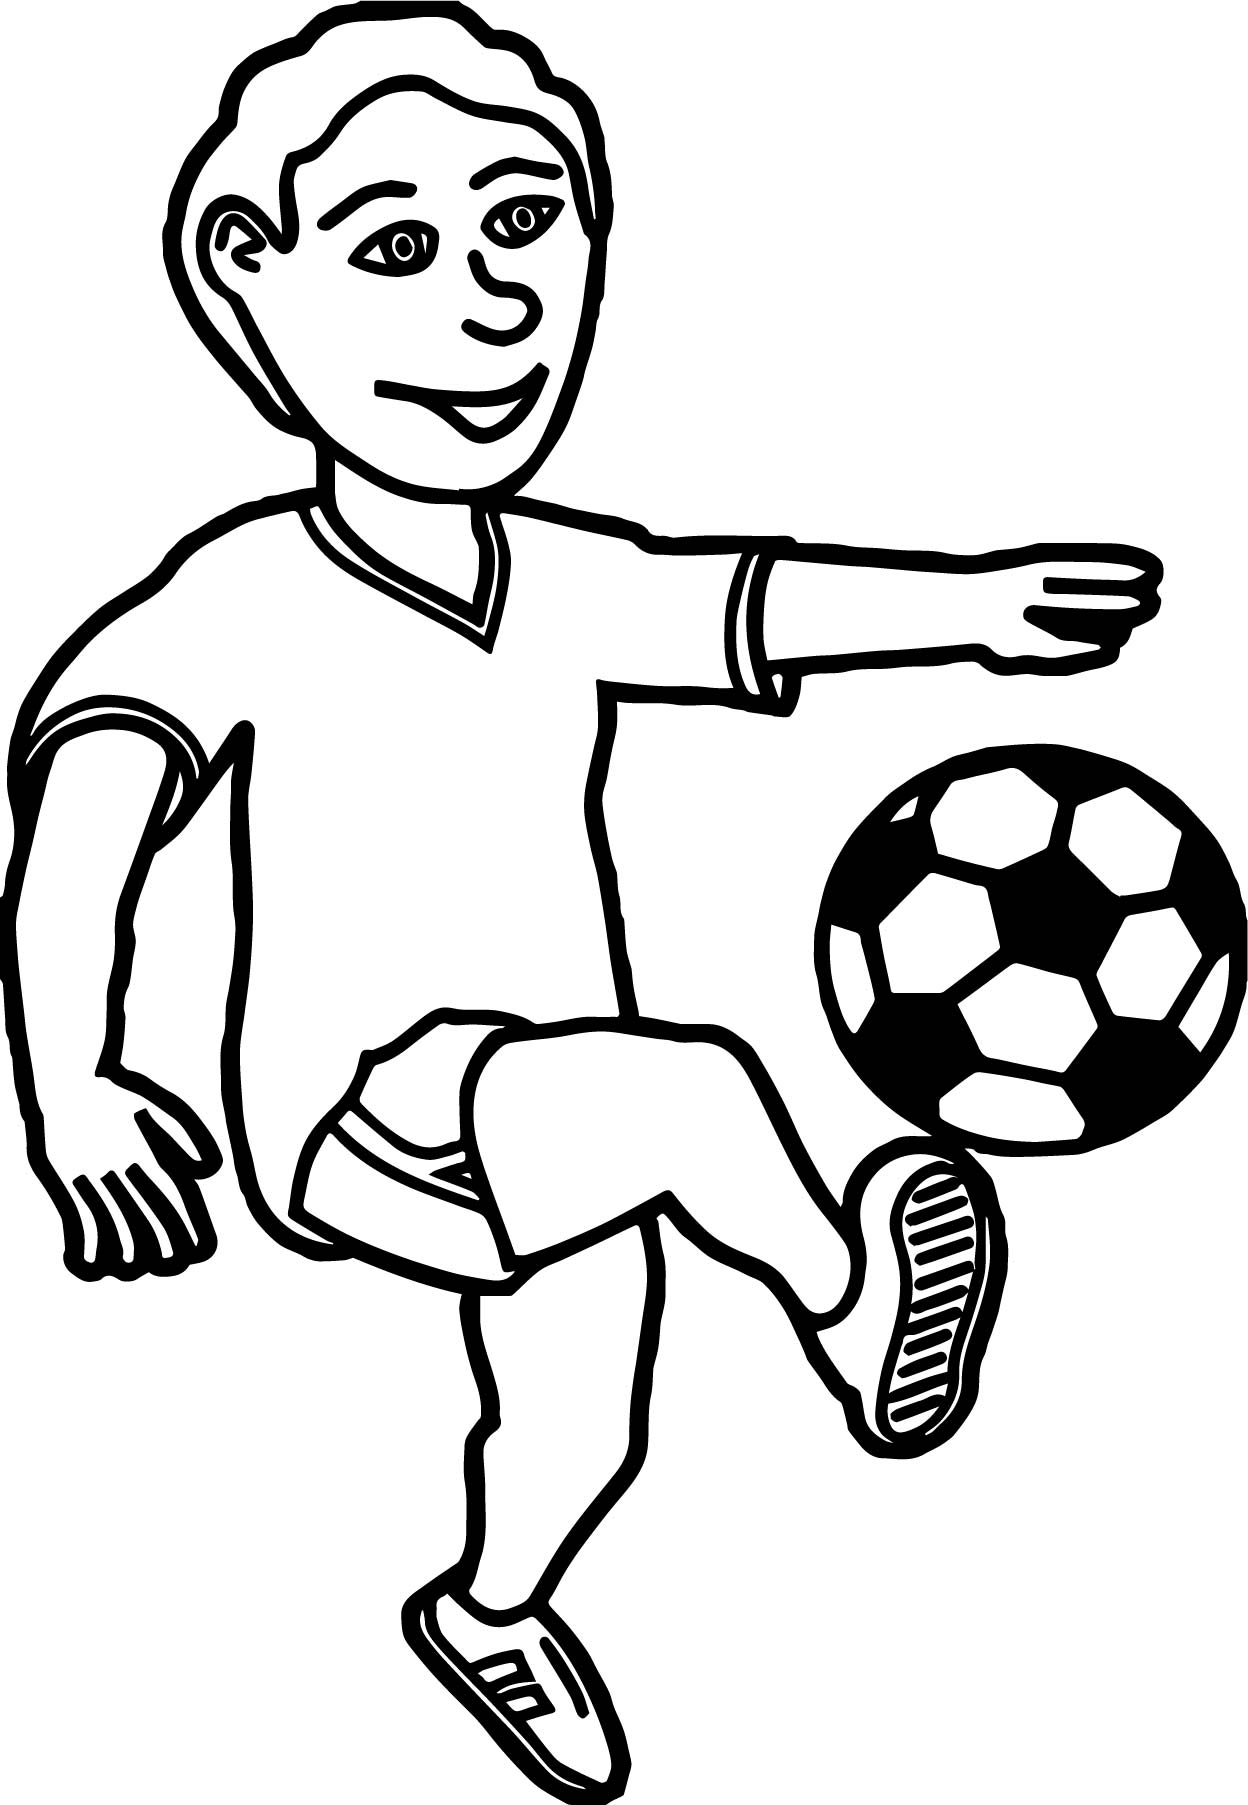 Kick Ball Boy Coloring Page